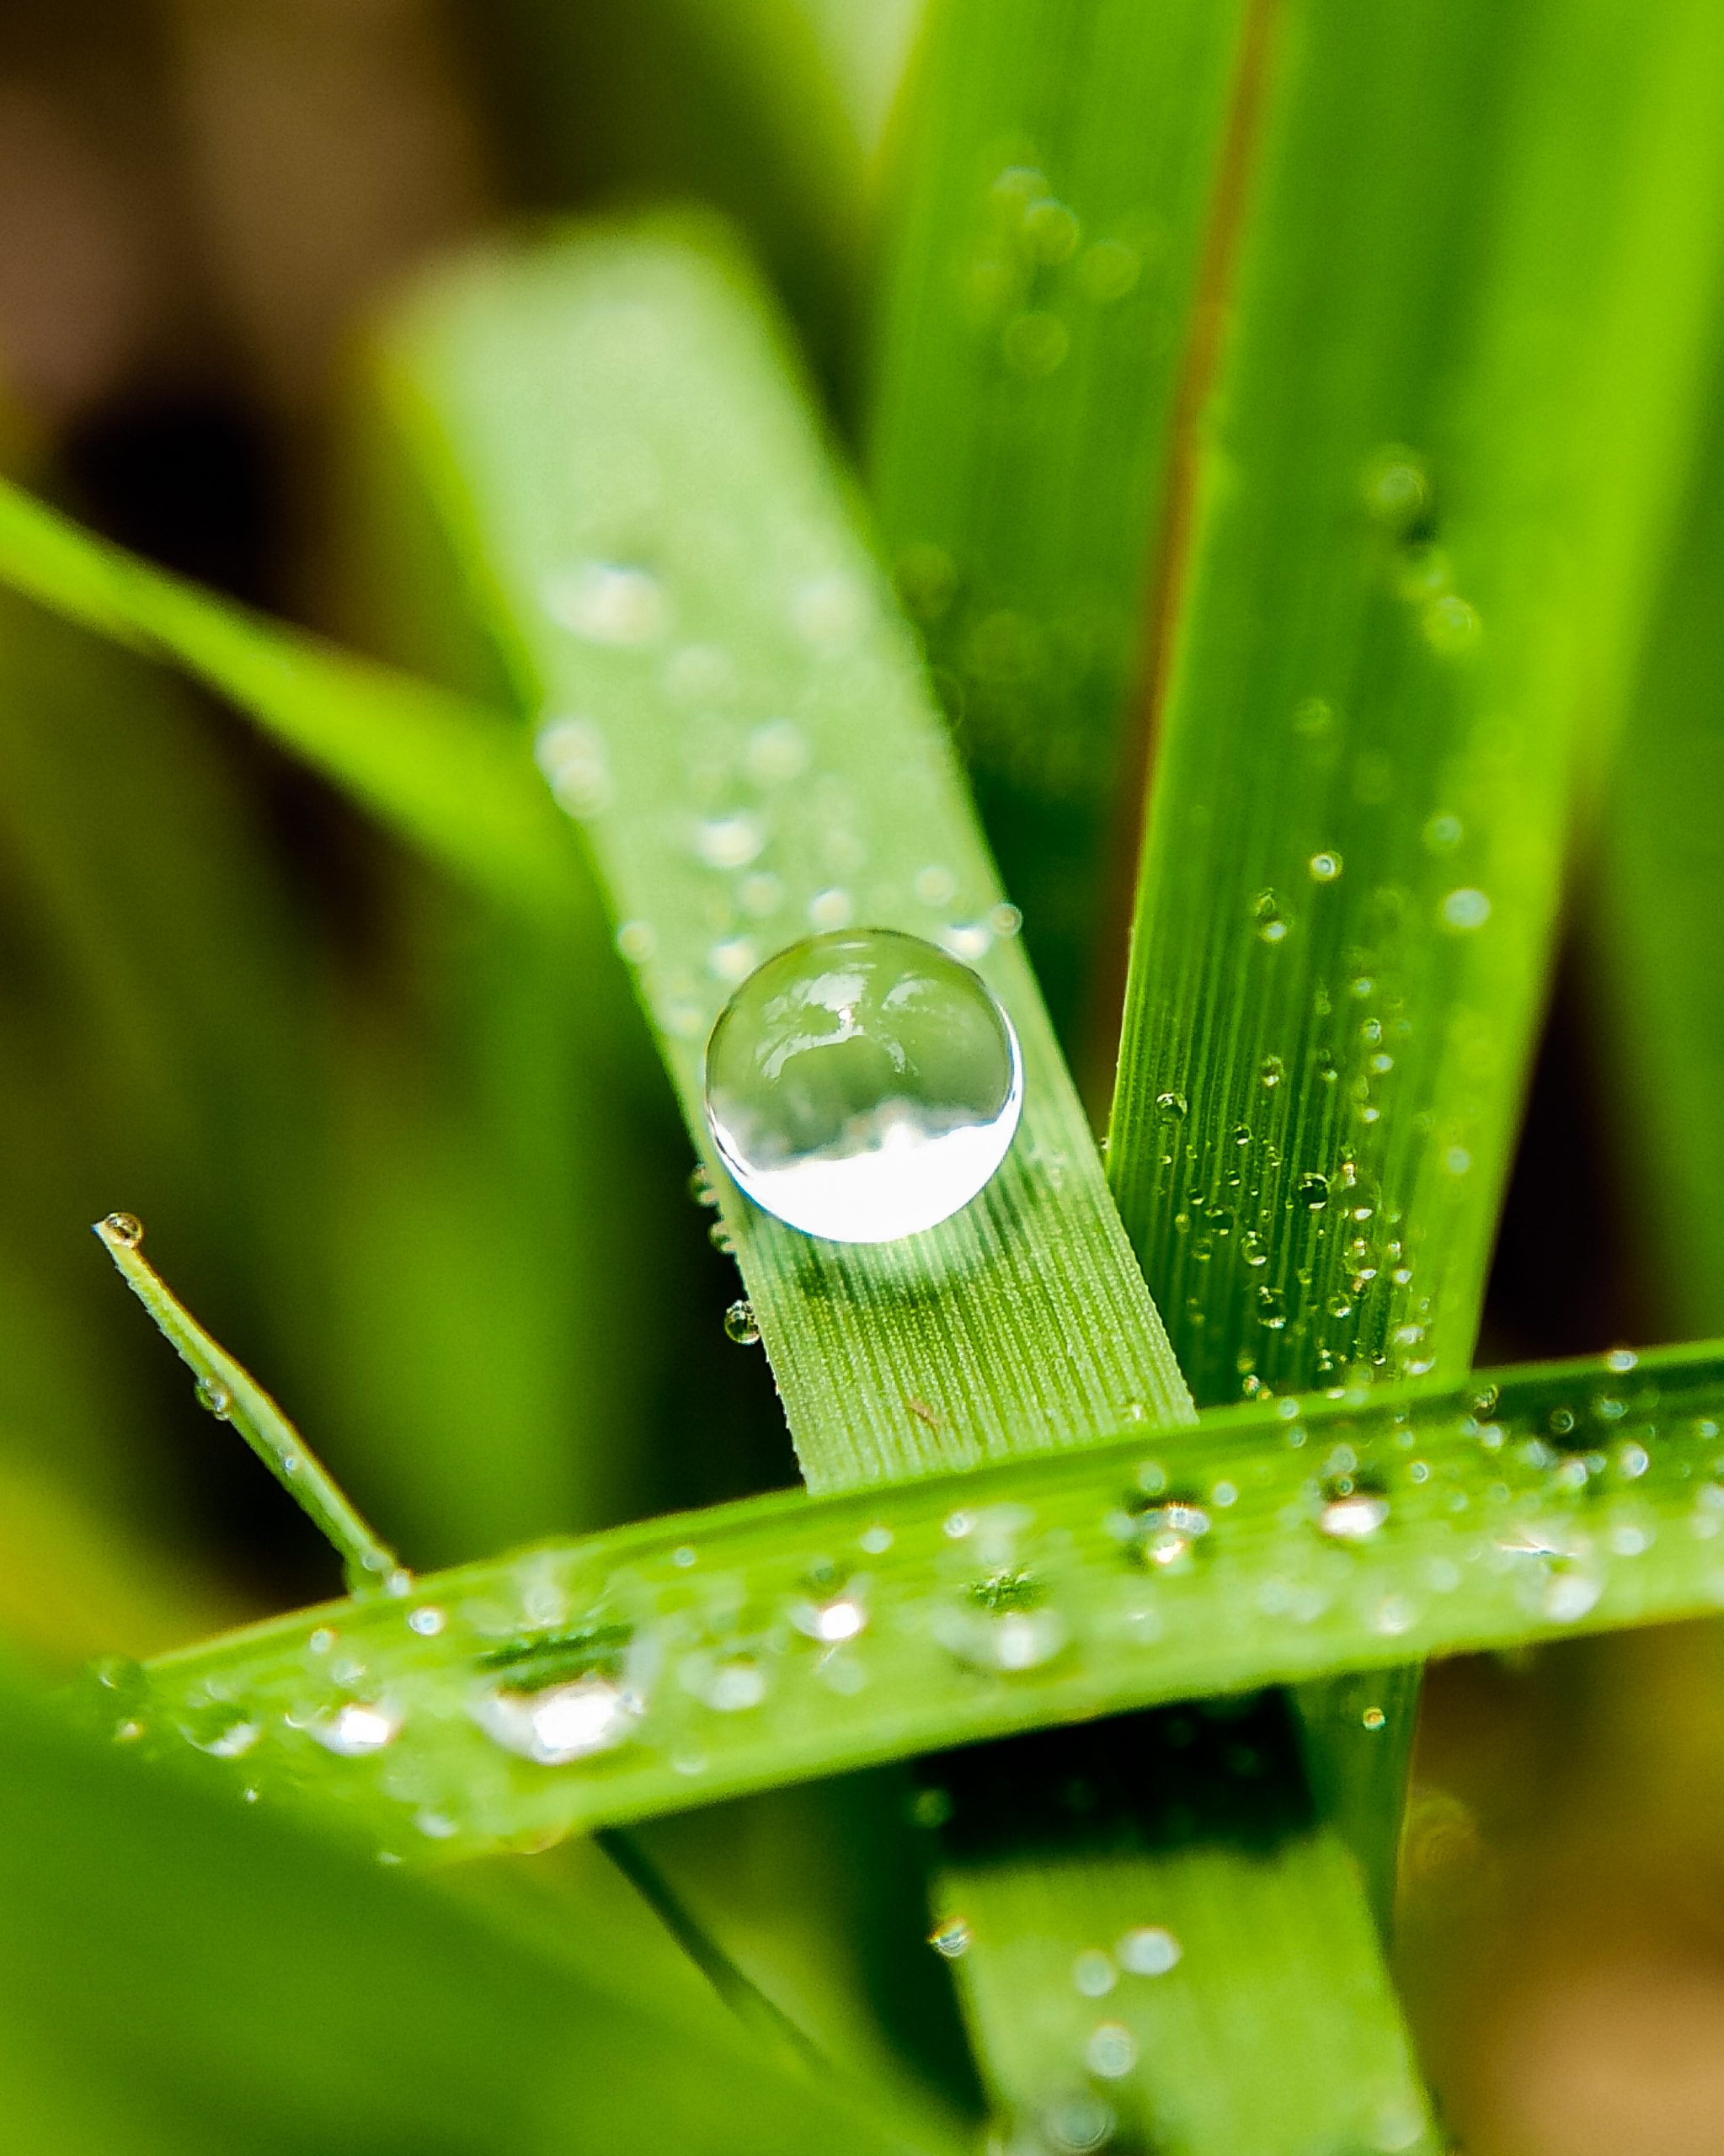 Dew drops on grass straws